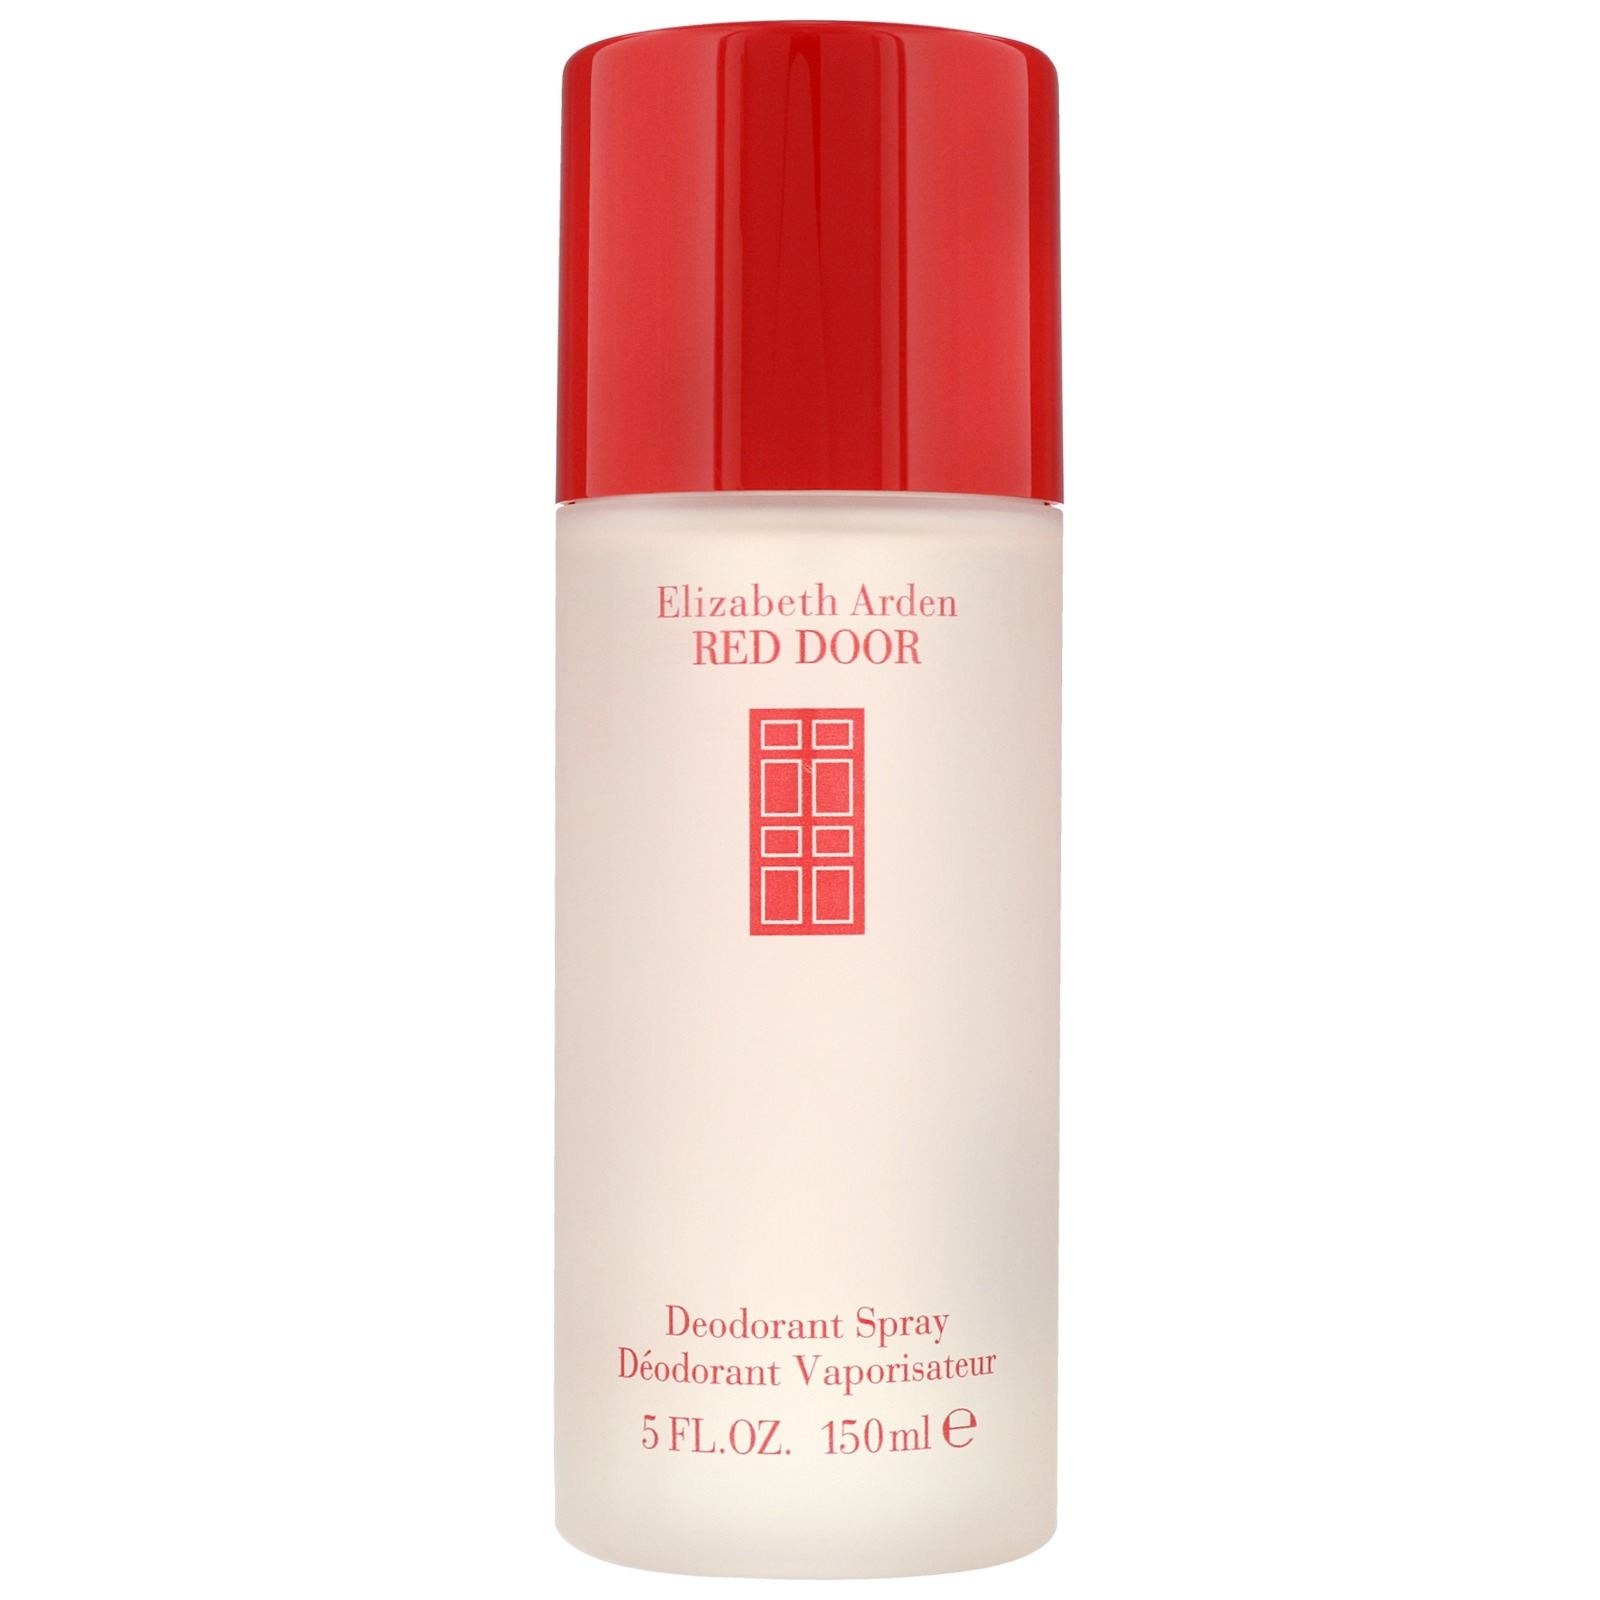 Elizabeth Arden Red Door 除臭喷雾 150ml/5 毫升。